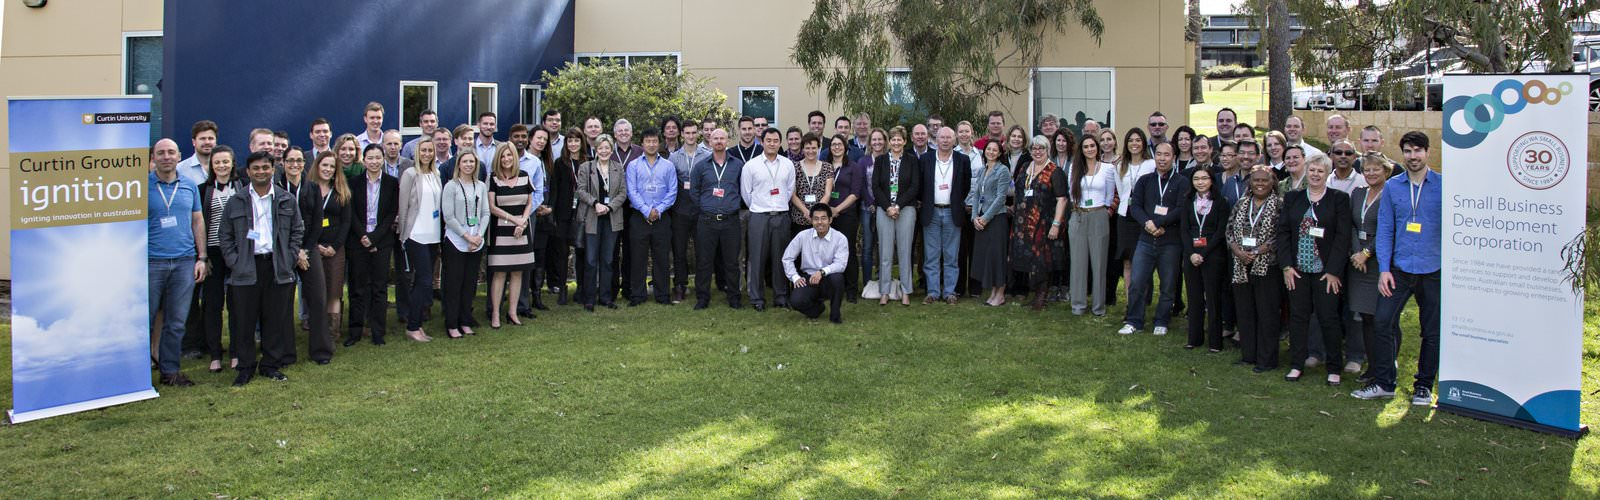 Participants and team at Curtin Ignition 2014.